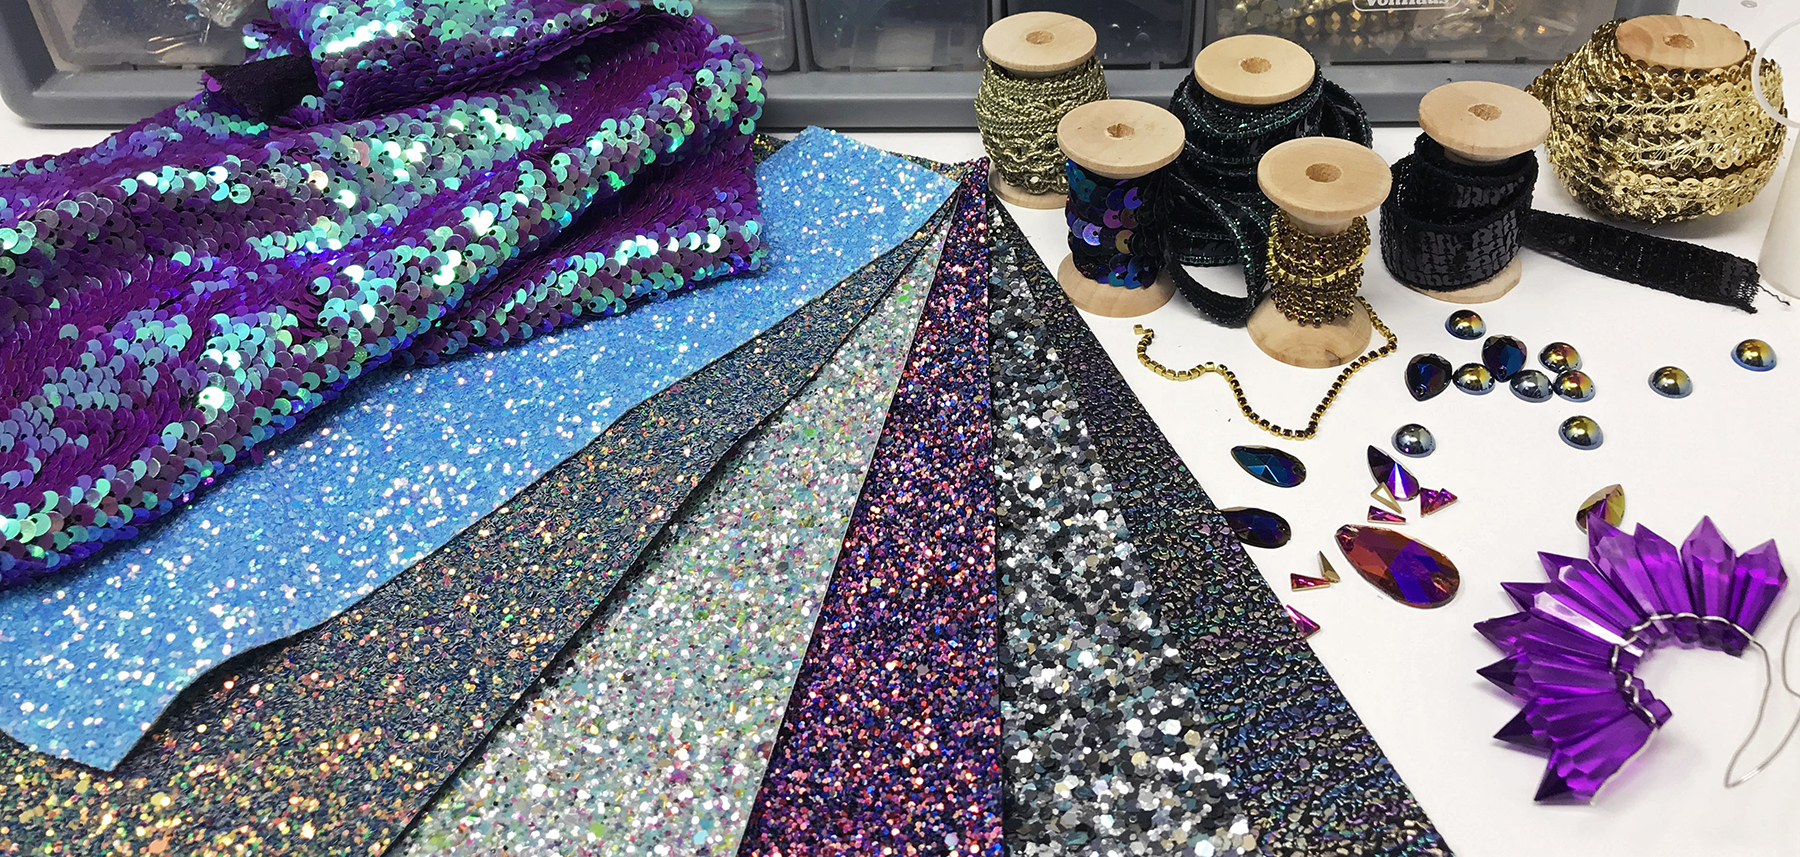 Glitter fabric, sequins, gemstones and crystals.